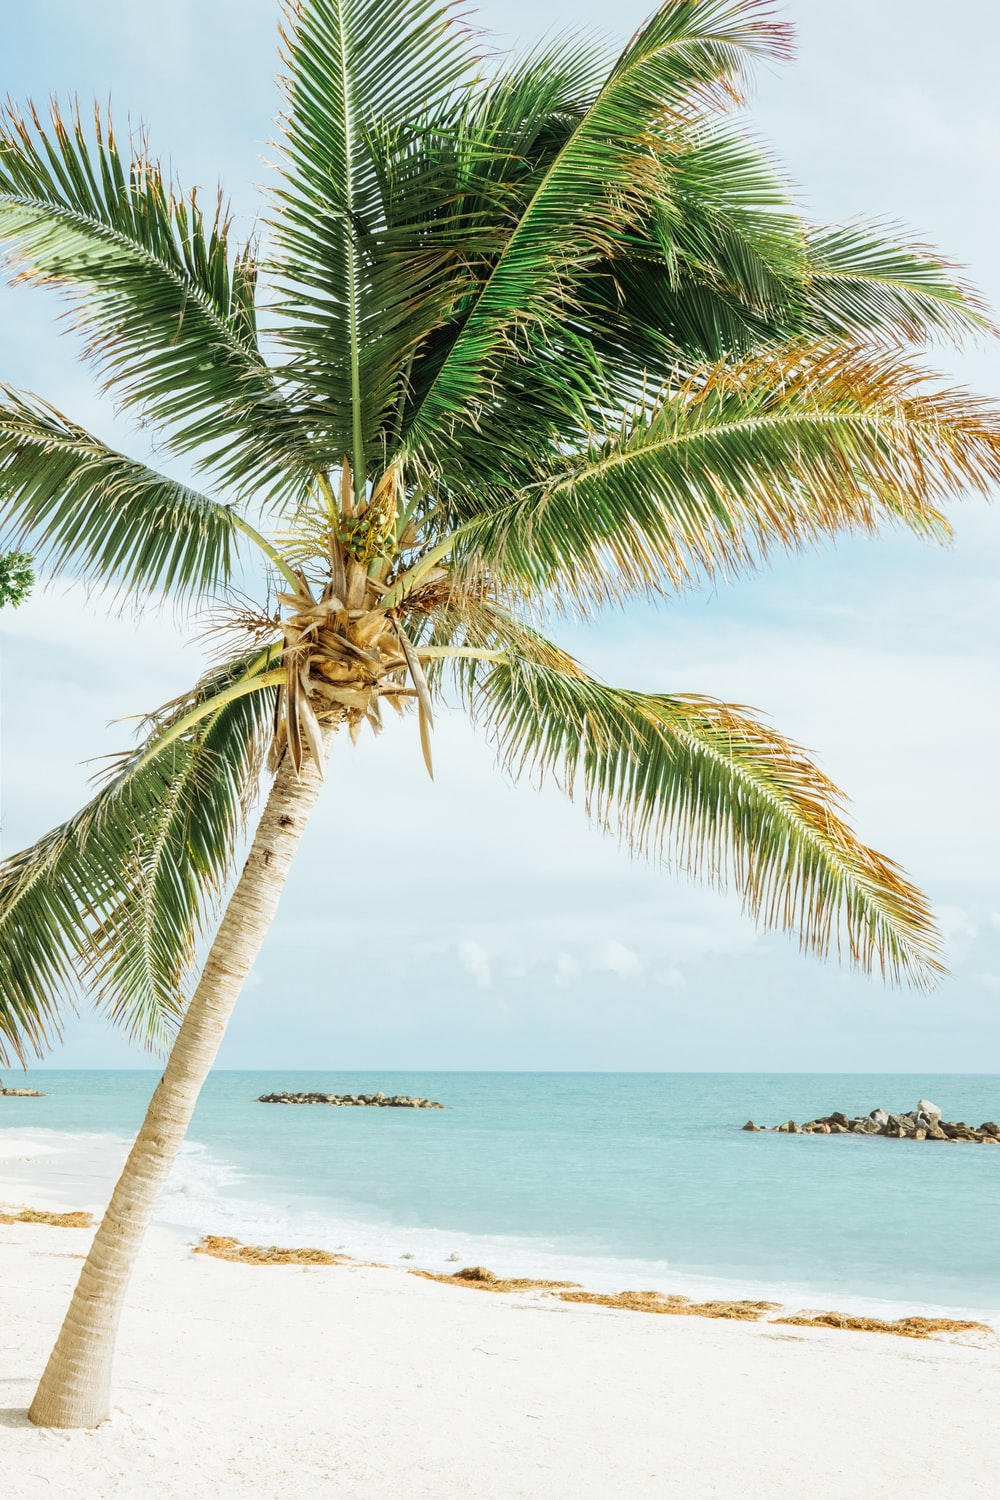 green leafed coconut tree near sea